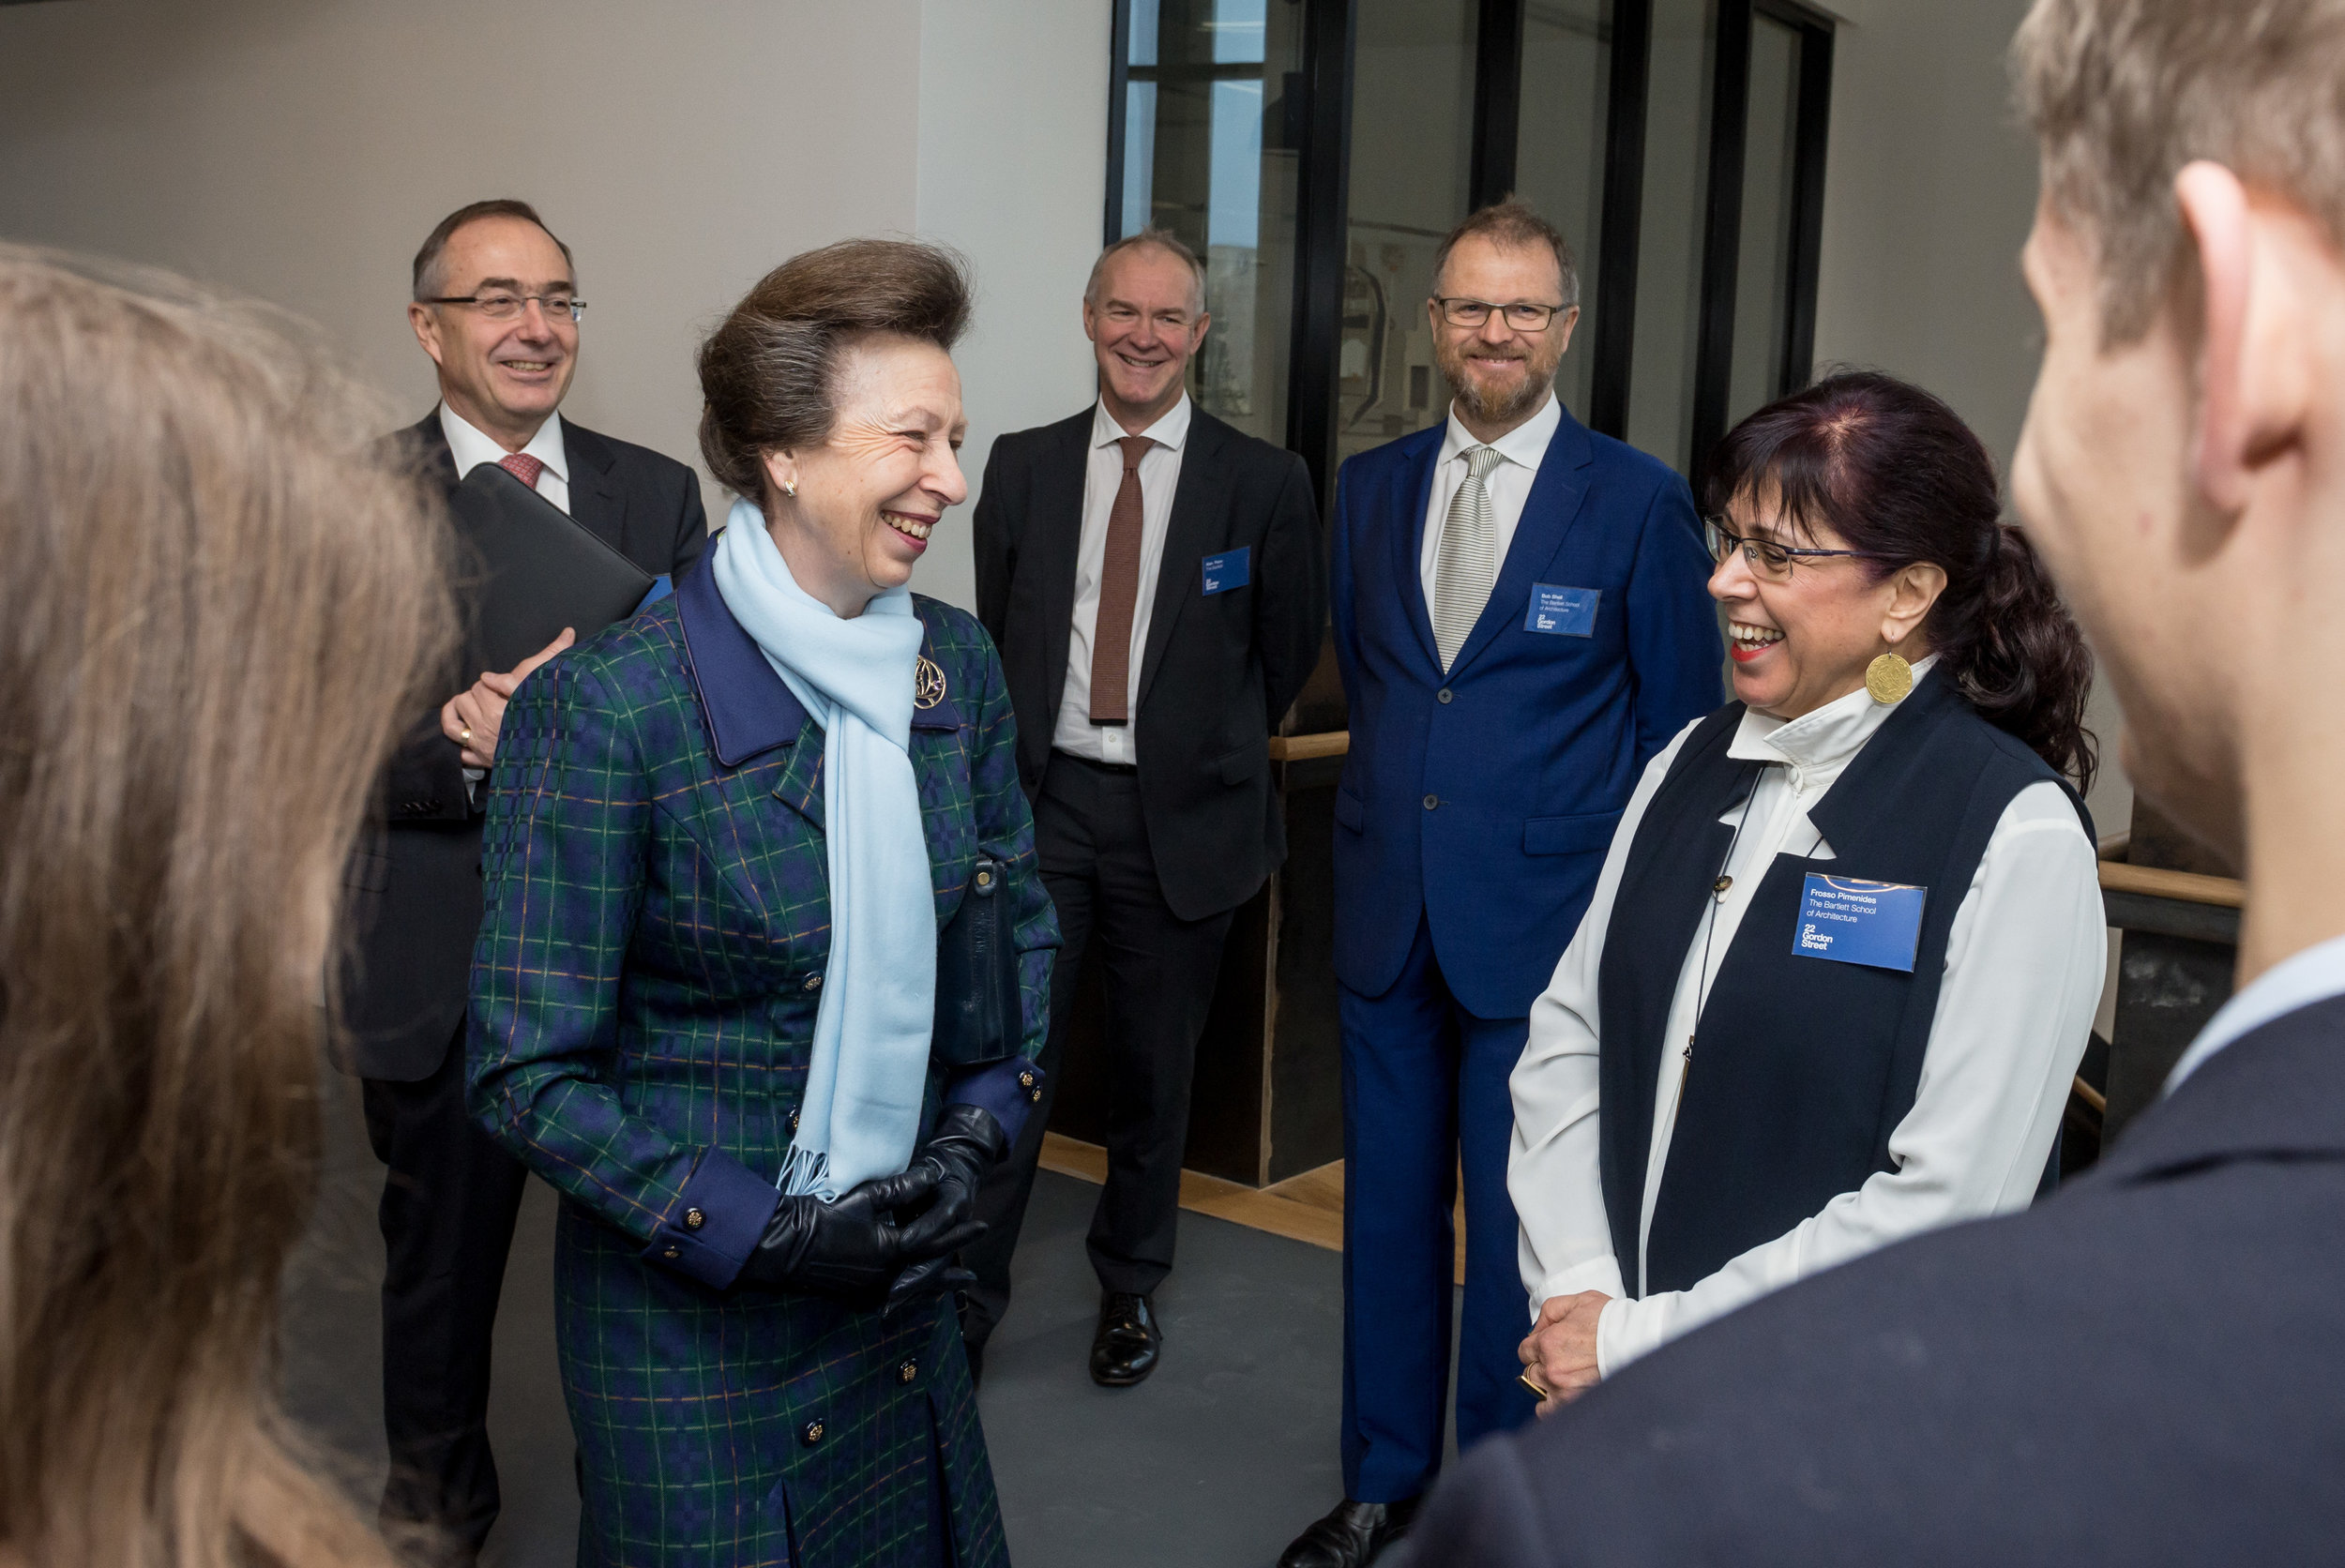 HRH Princess Anne chats with Frosso Pimenides, Head of first year and meets students while touring the building before officially opening the refurbished  Bartlett School of Architecture, 22 Gordon Street. London 16/12/2016